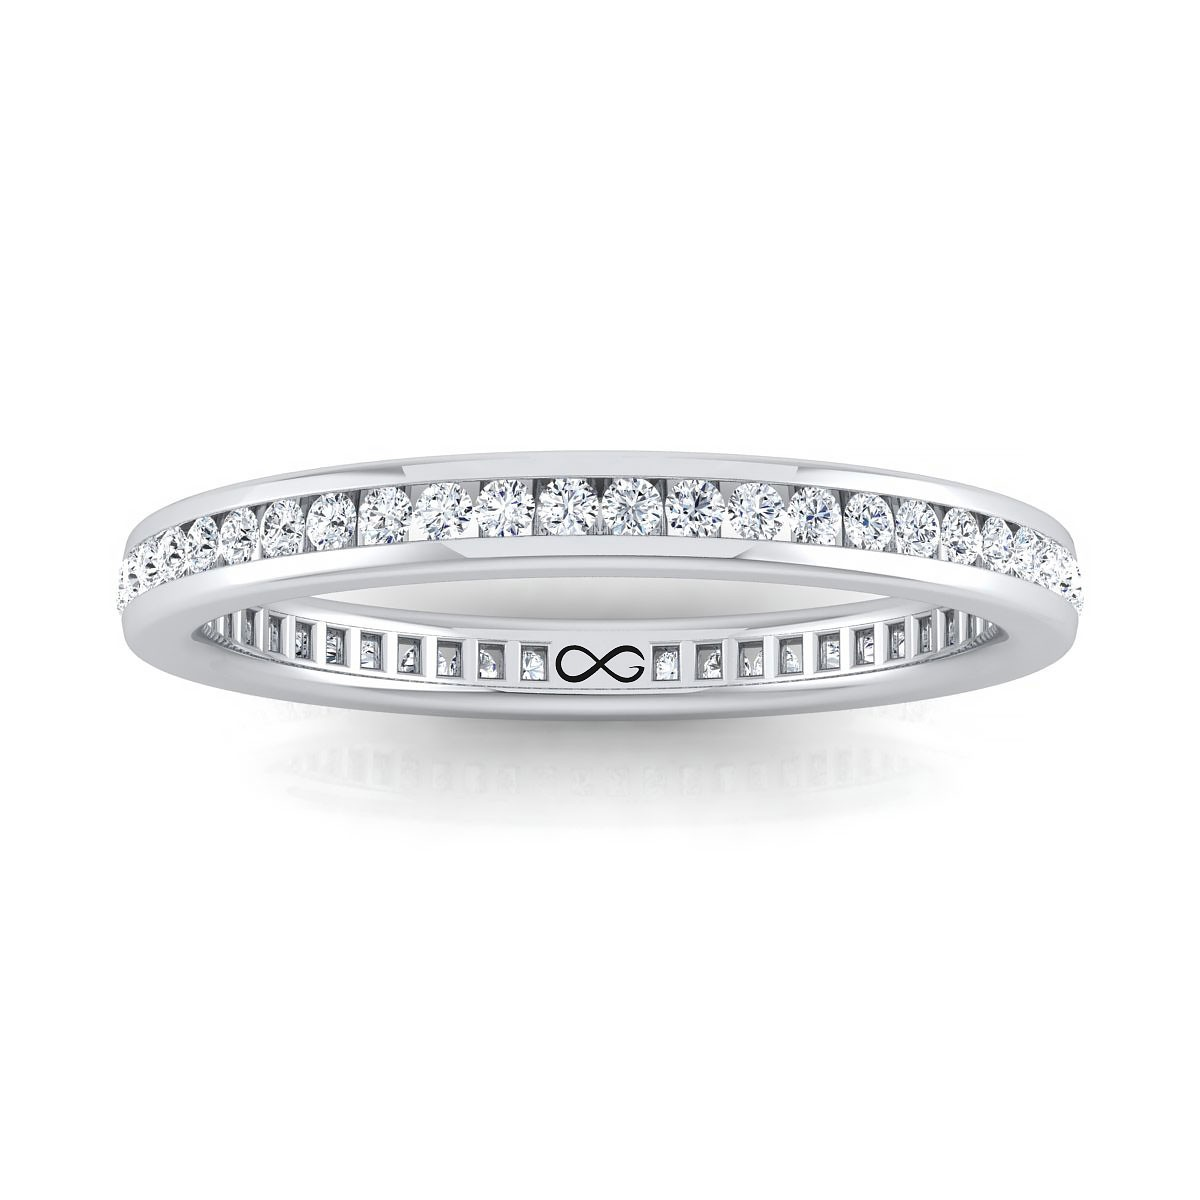 STARS IN CHANNEL SET ETERNITY BAND (0.38ct)